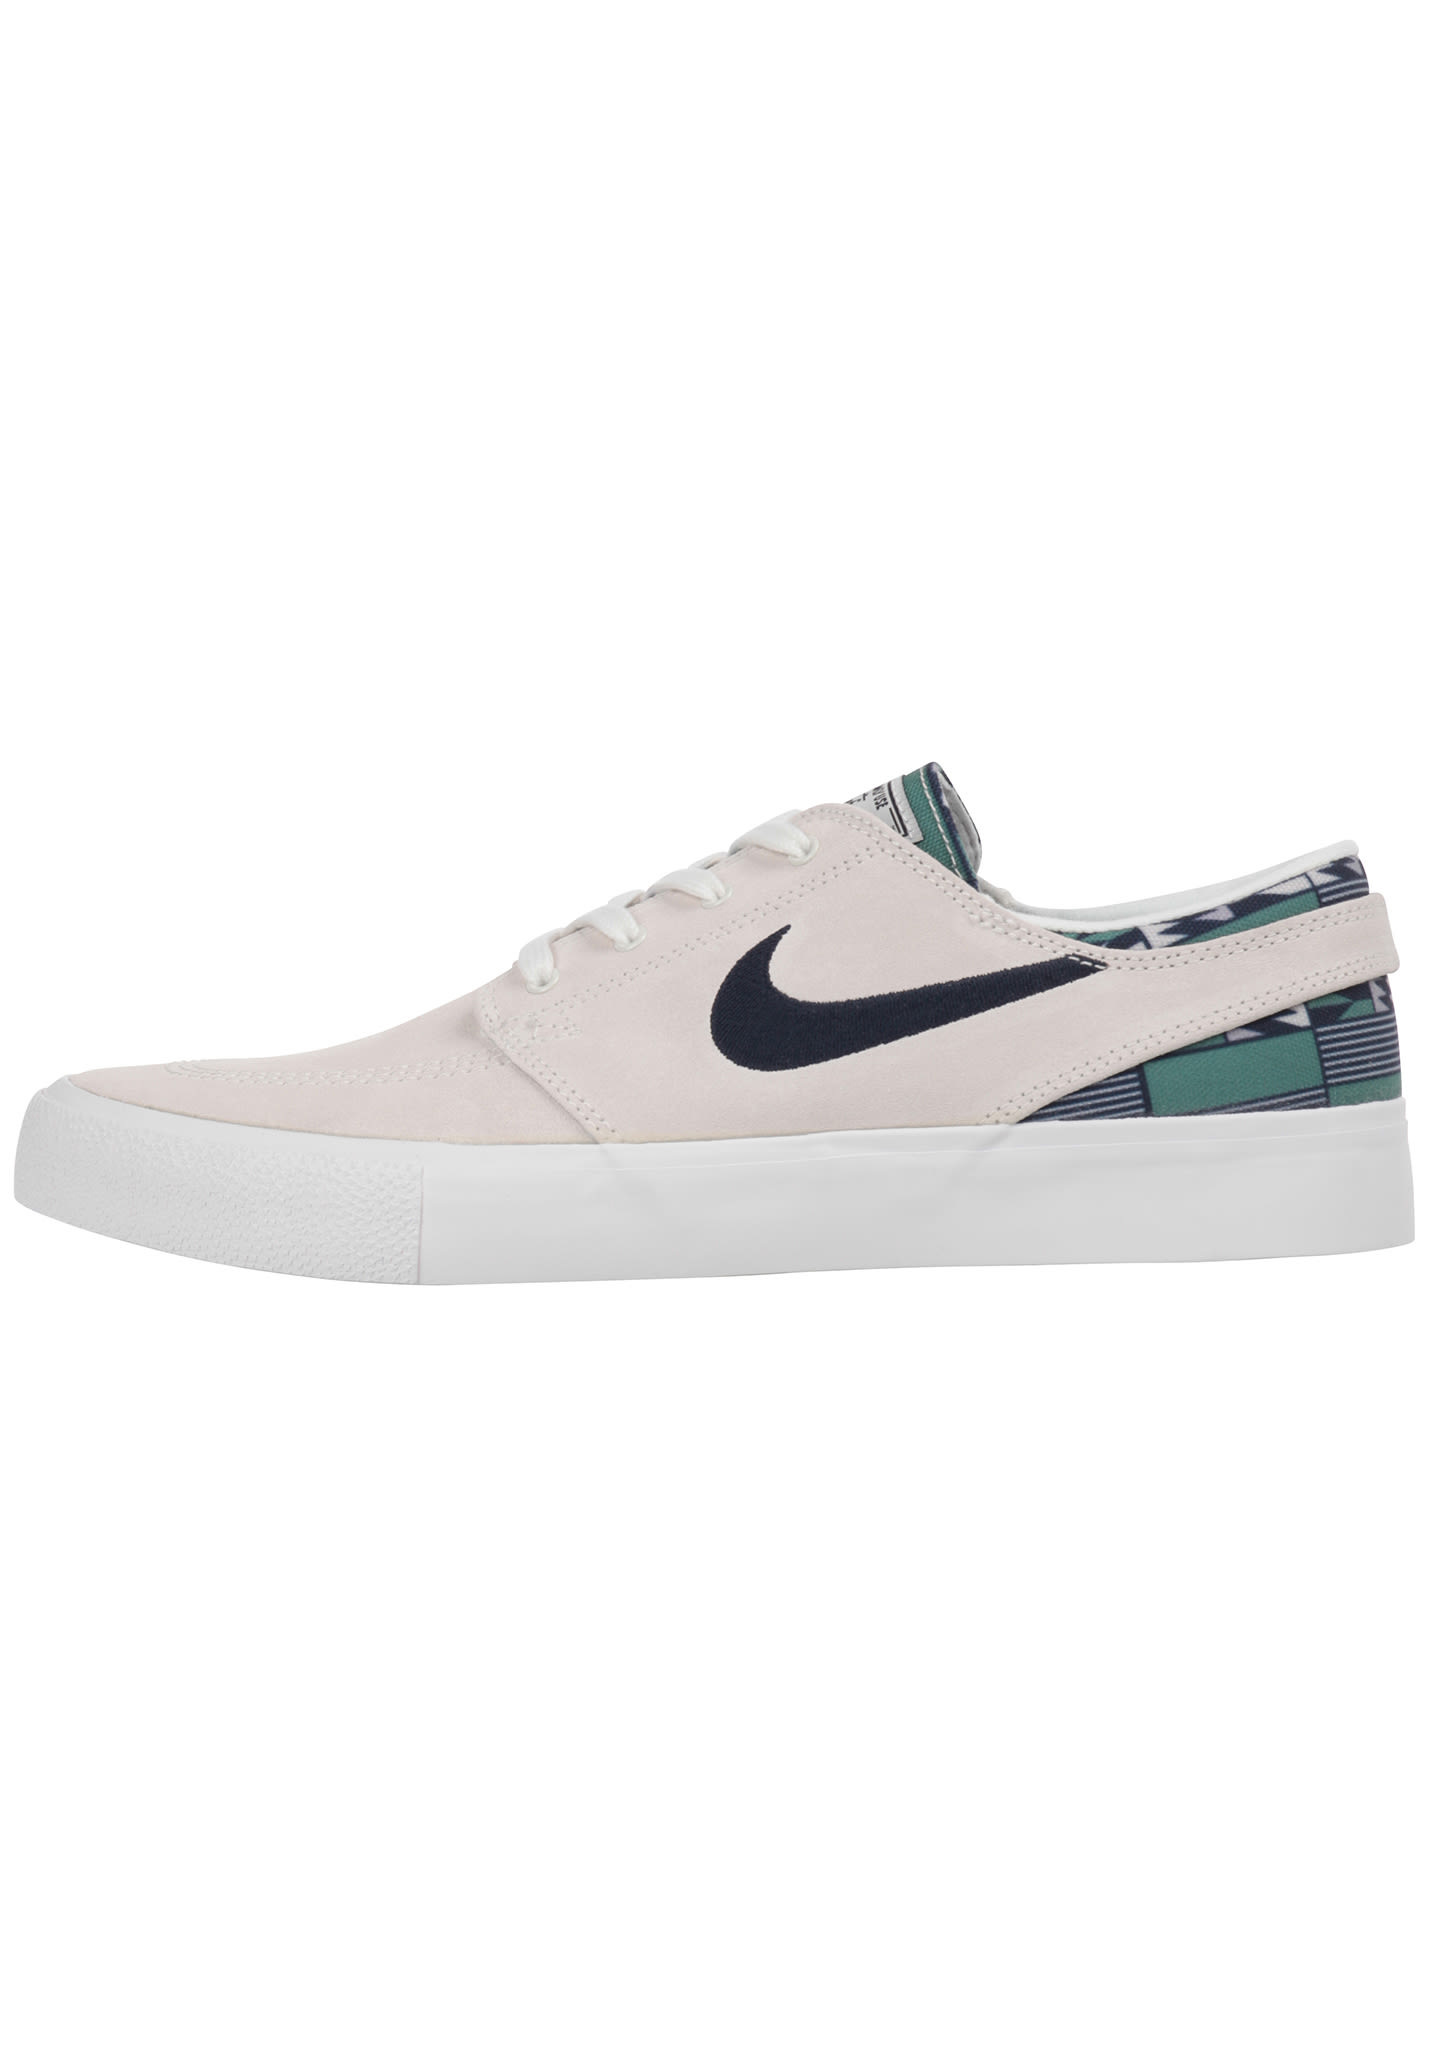 NIKE SB Zoom Janoski RM Sneakers Blauw Planet Sports